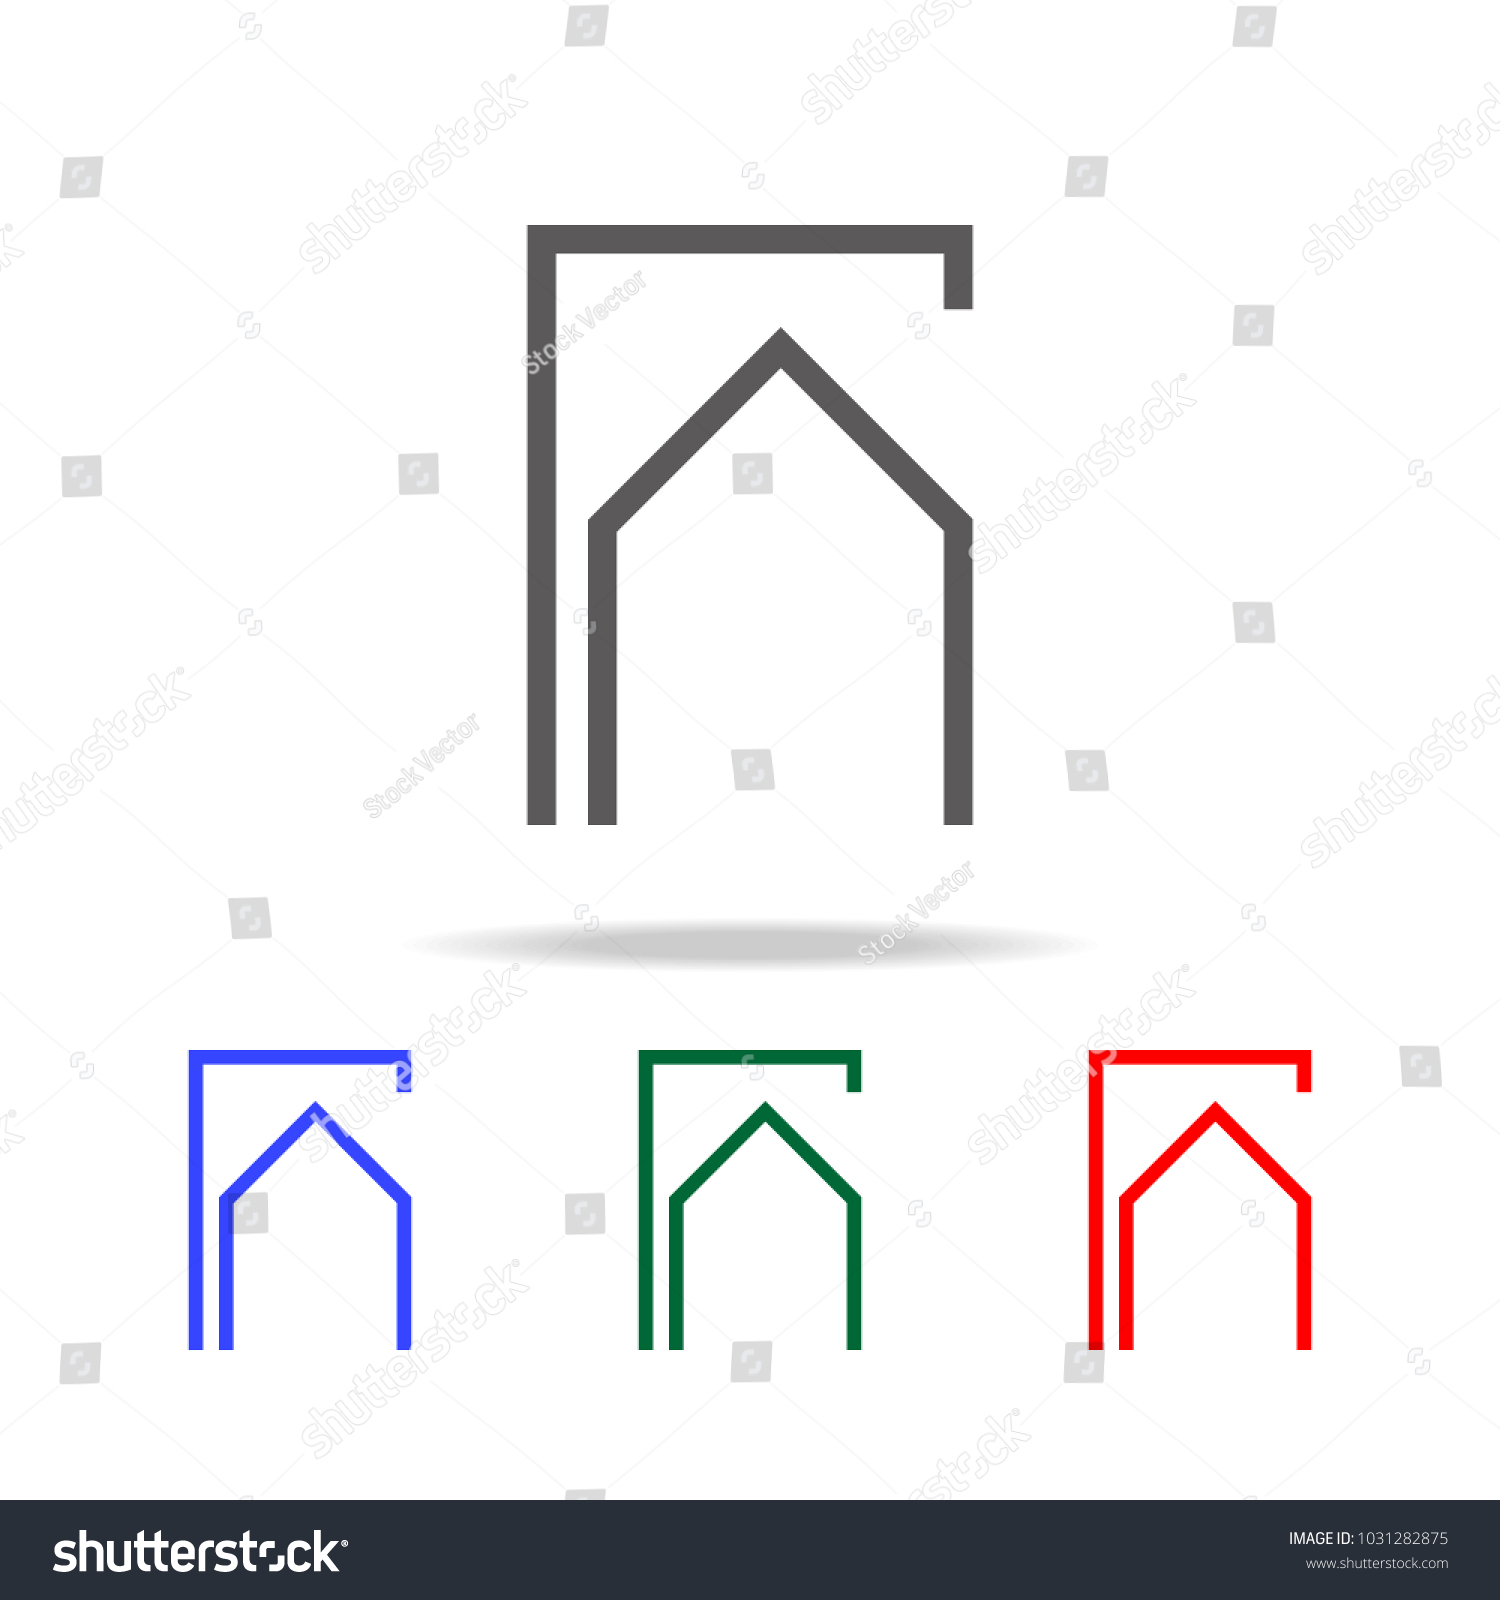 Electronic Circuit Symbol Icon Elements Multi Stock Vector Royalty Symbols Photo In Colored Icons For Mobile Concept And Web Apps